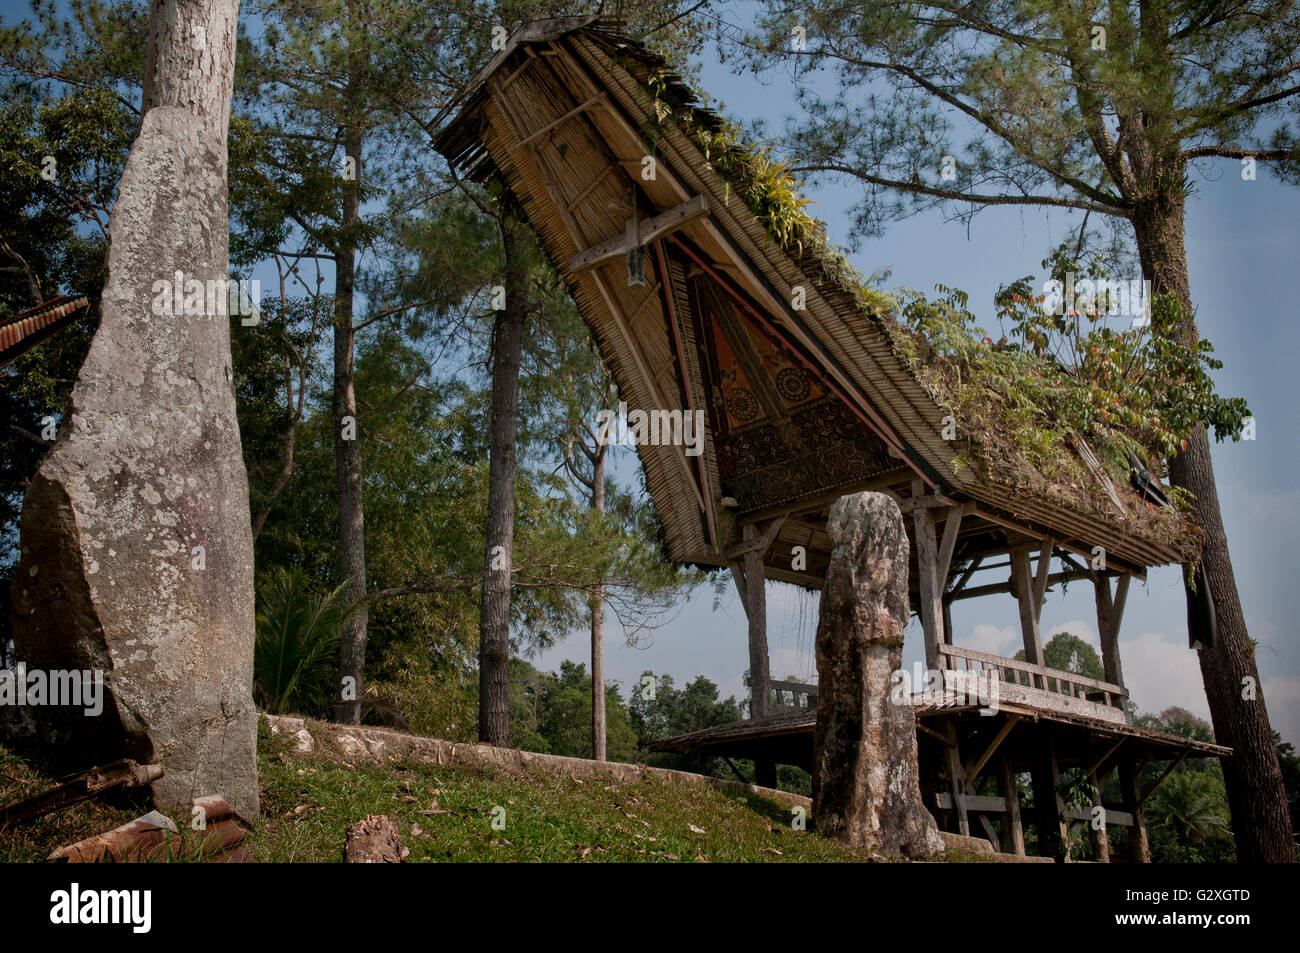 Sulawesi, Kete Kesu Village, traditional house - Stock Image